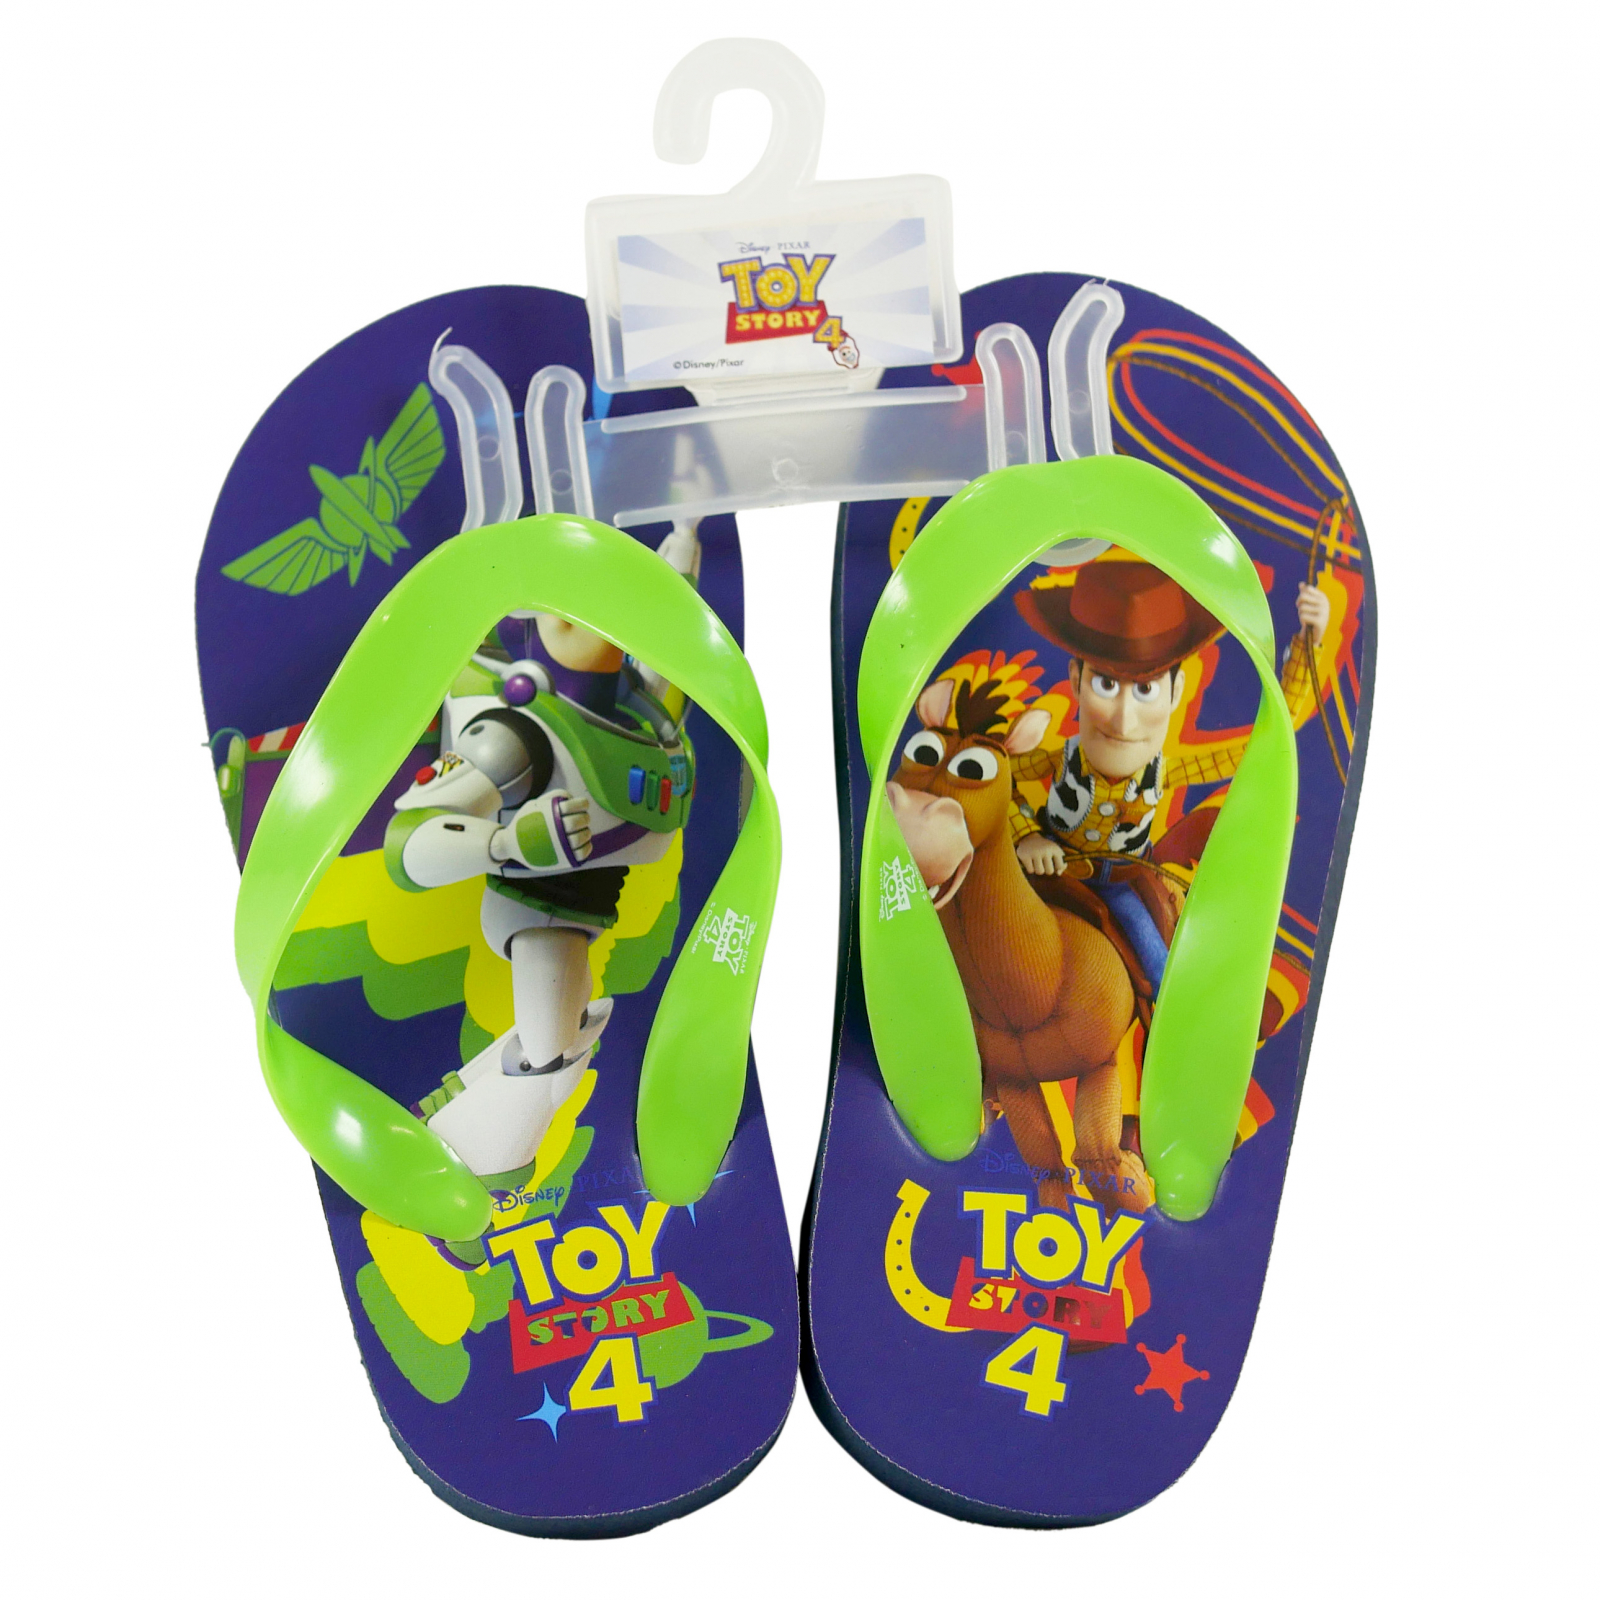 Disney Pixar Toy Story 4 Kids Sandals Green Strap Large 9/10